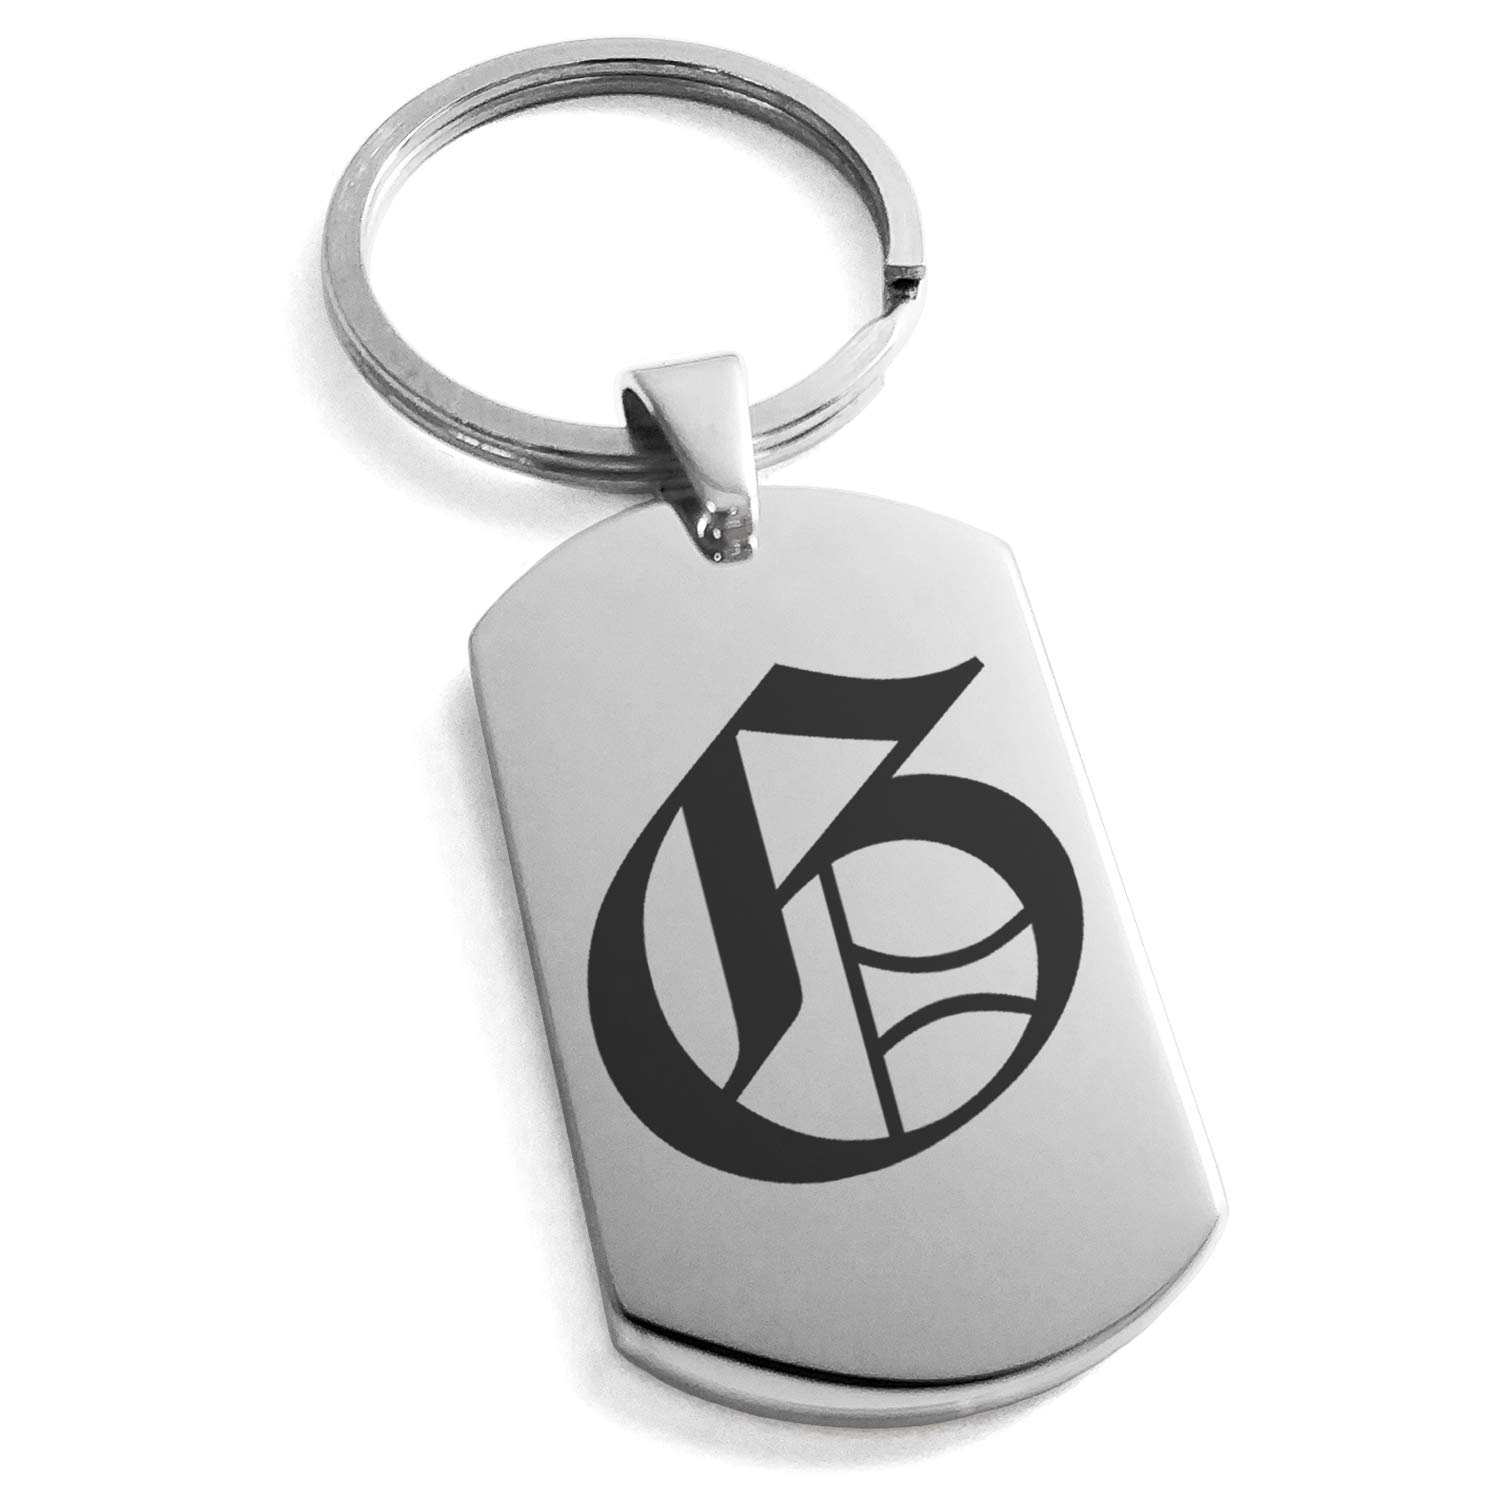 Tioneer Stainless Steel Letter G Initial Old English Monogram Engraved Dog Tag Keychain Keyring